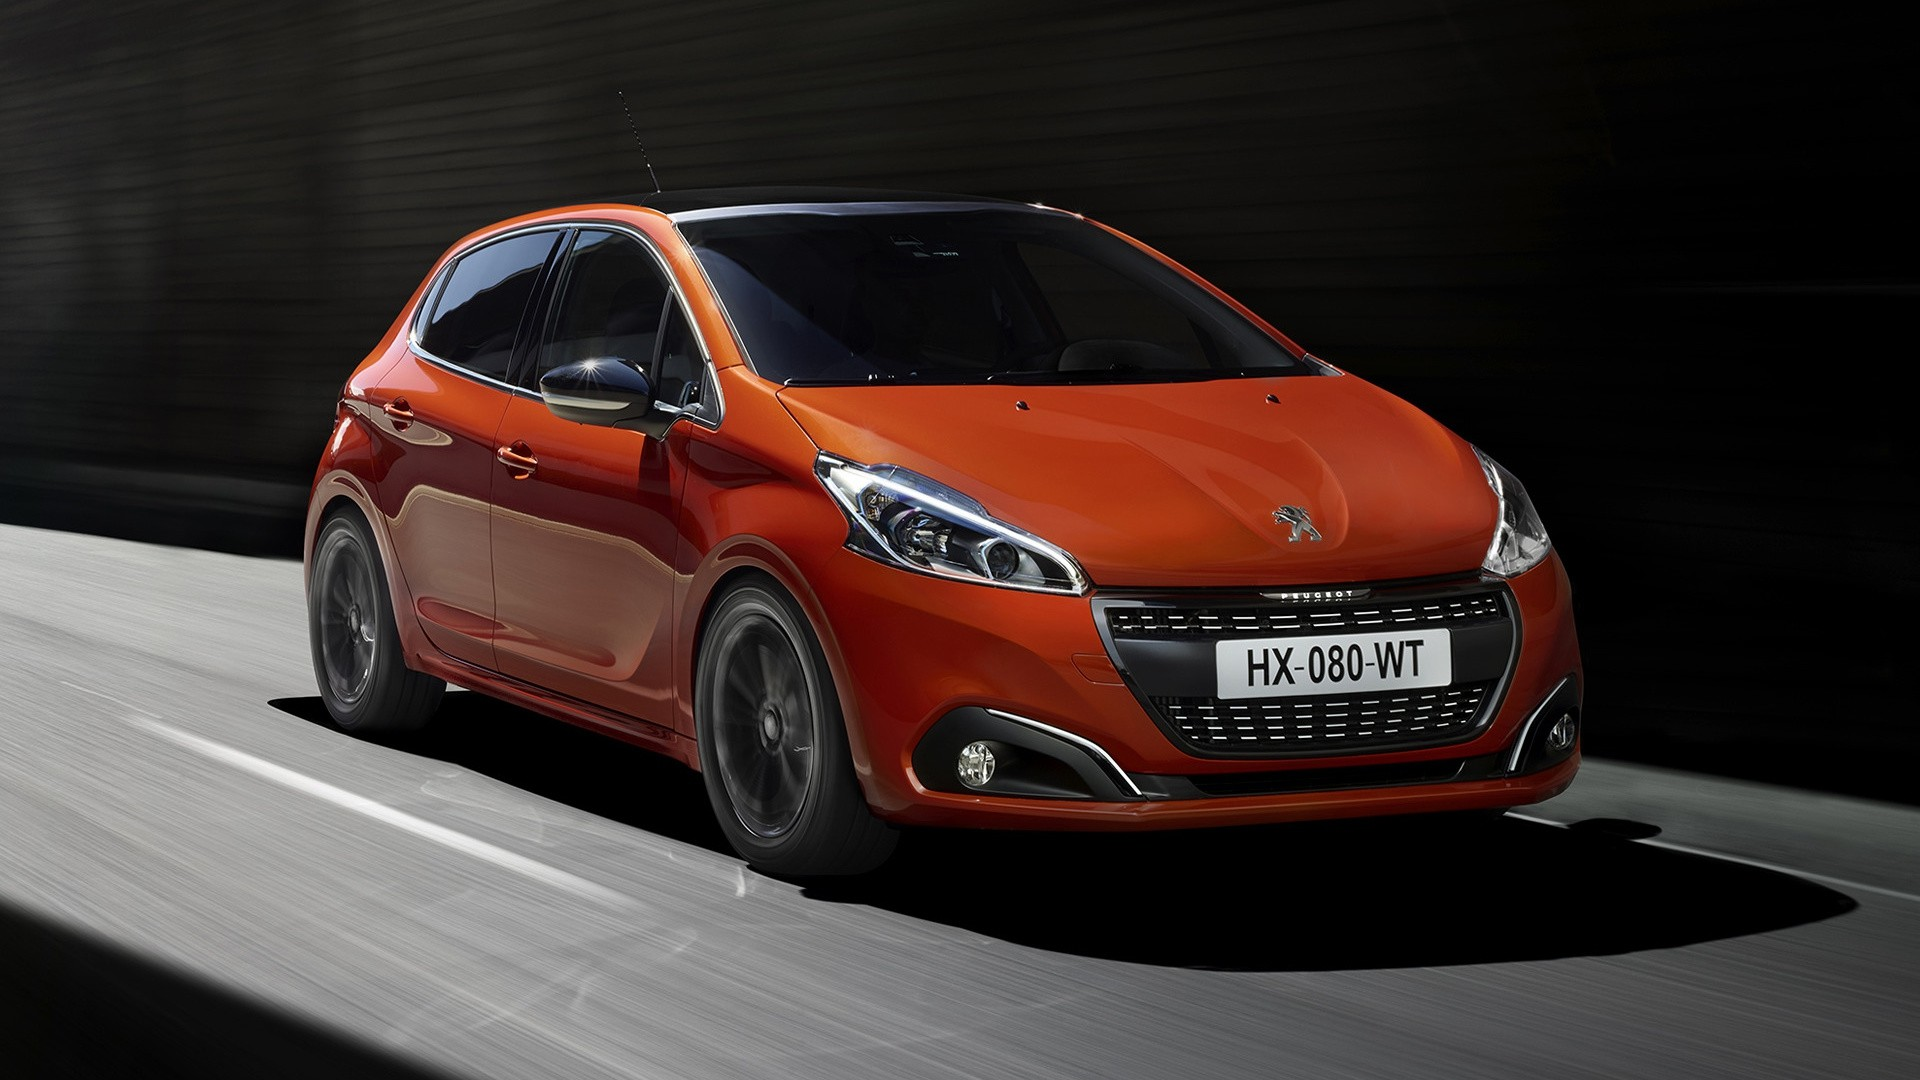 Res: 1920x1080, Peugeot 208 Gti Background